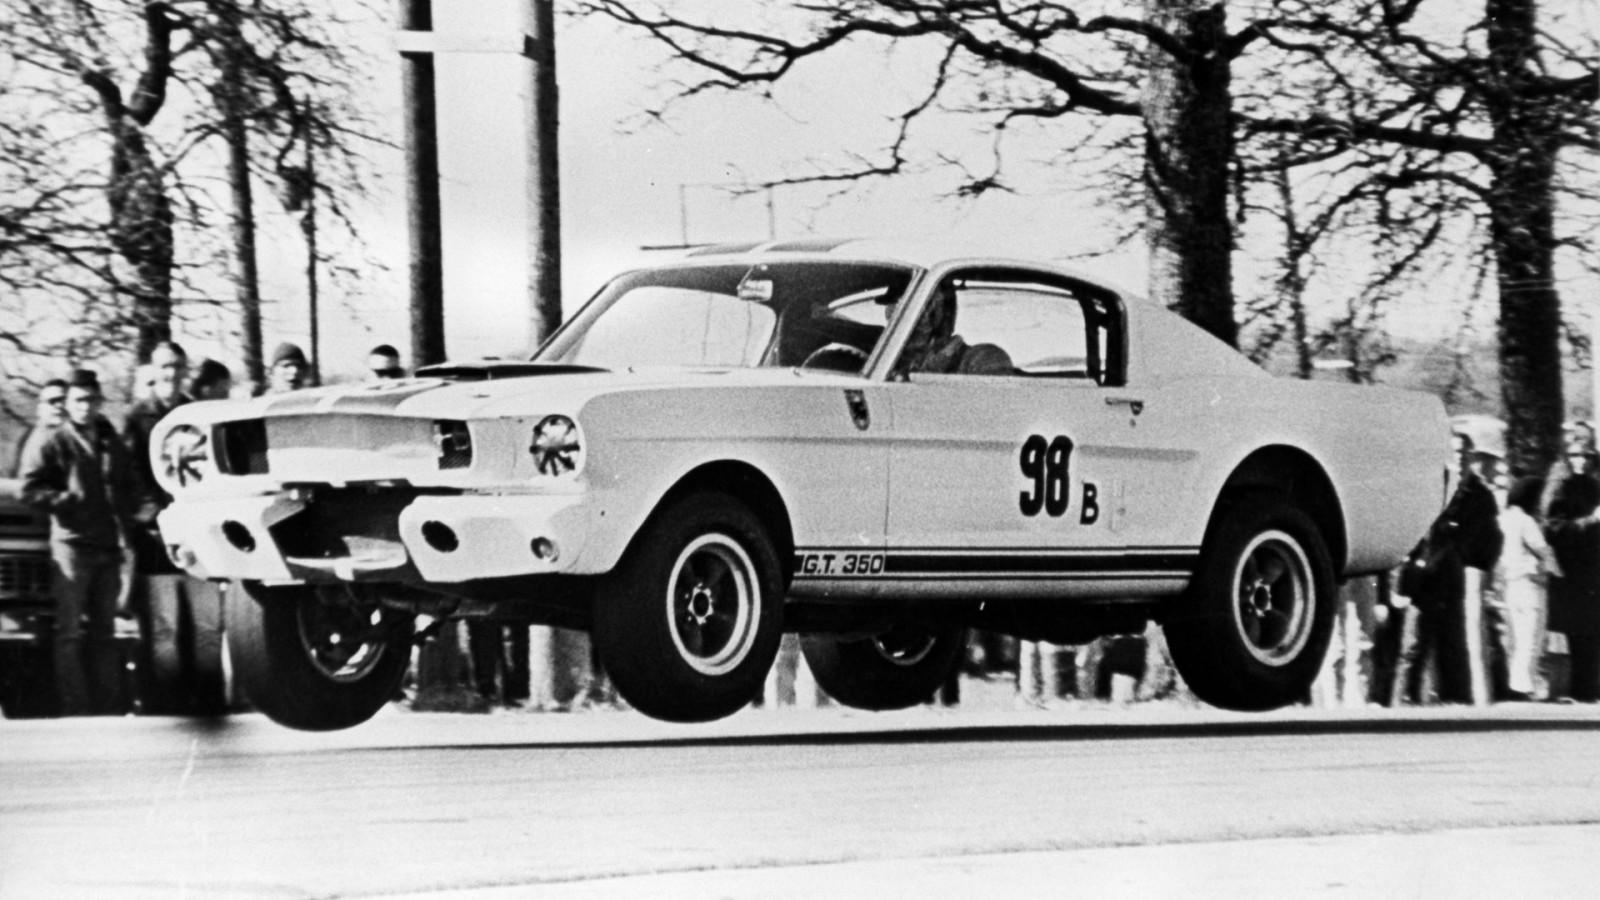 1965 SHELBY GT350R PROTOTYPE Flying Mustang